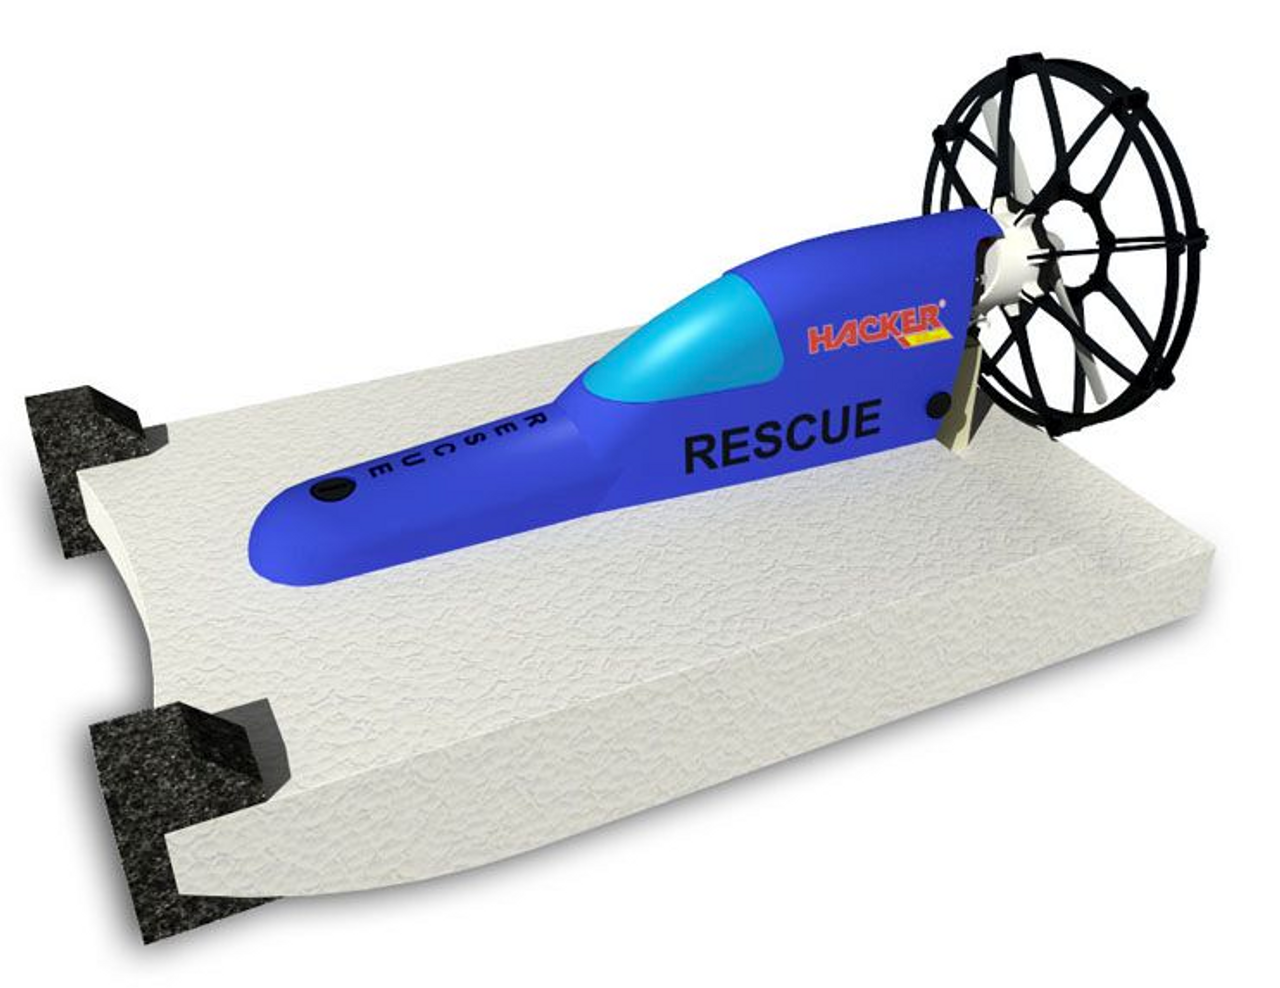 HM - RESCUE - EPP Boat Kit - Blue